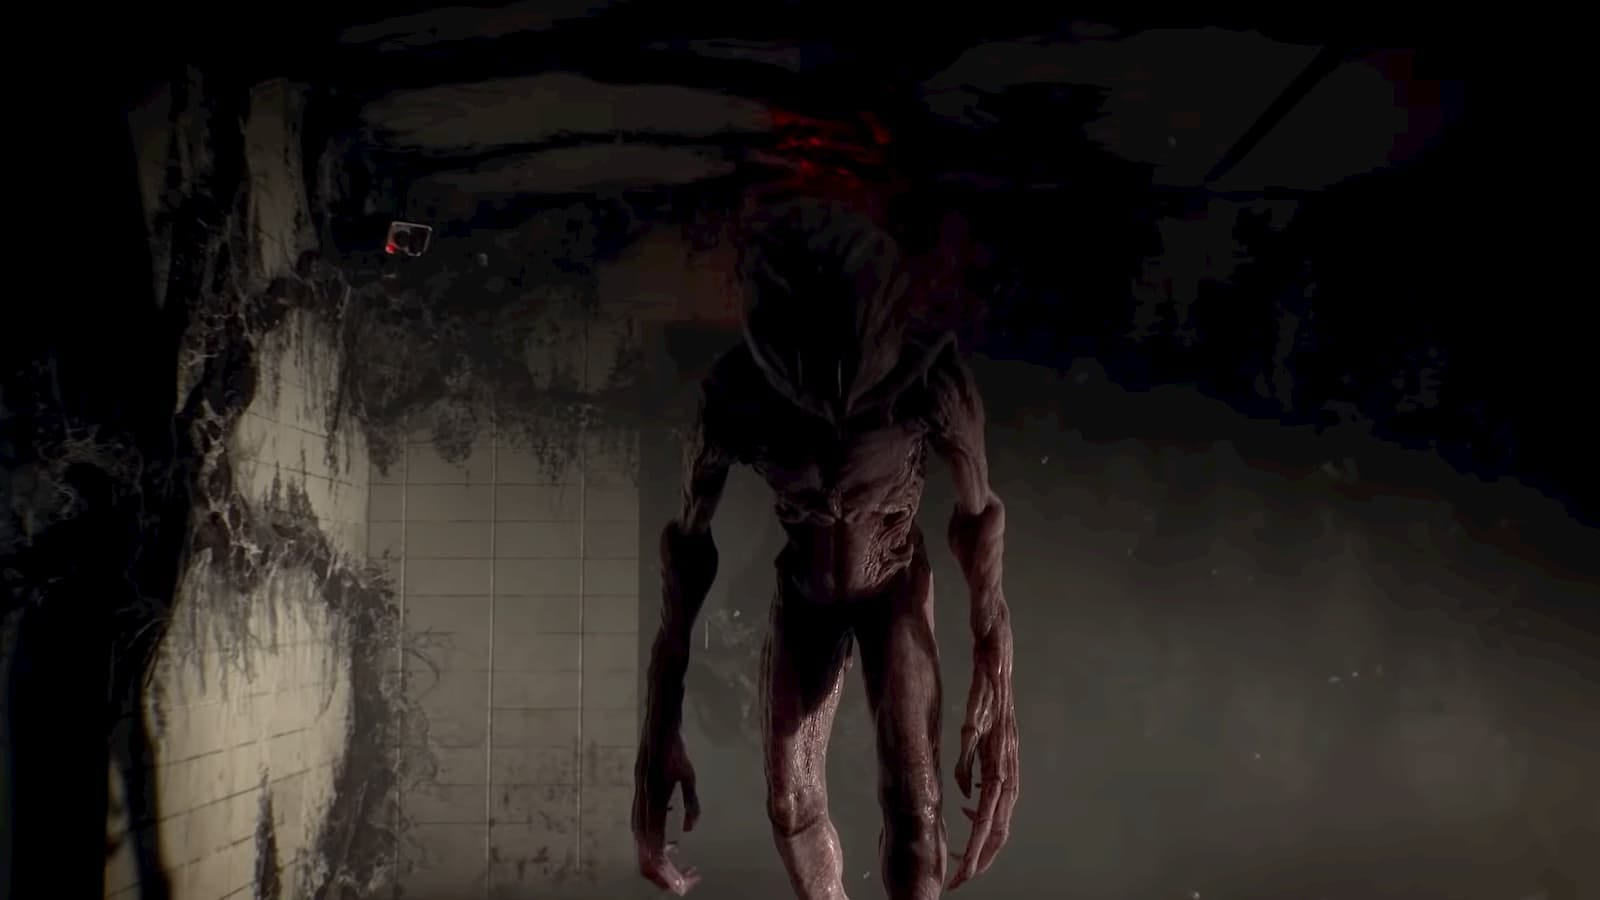 Stranger Things' Demogorgon will be a playable killer in 'Dead by Daylight'